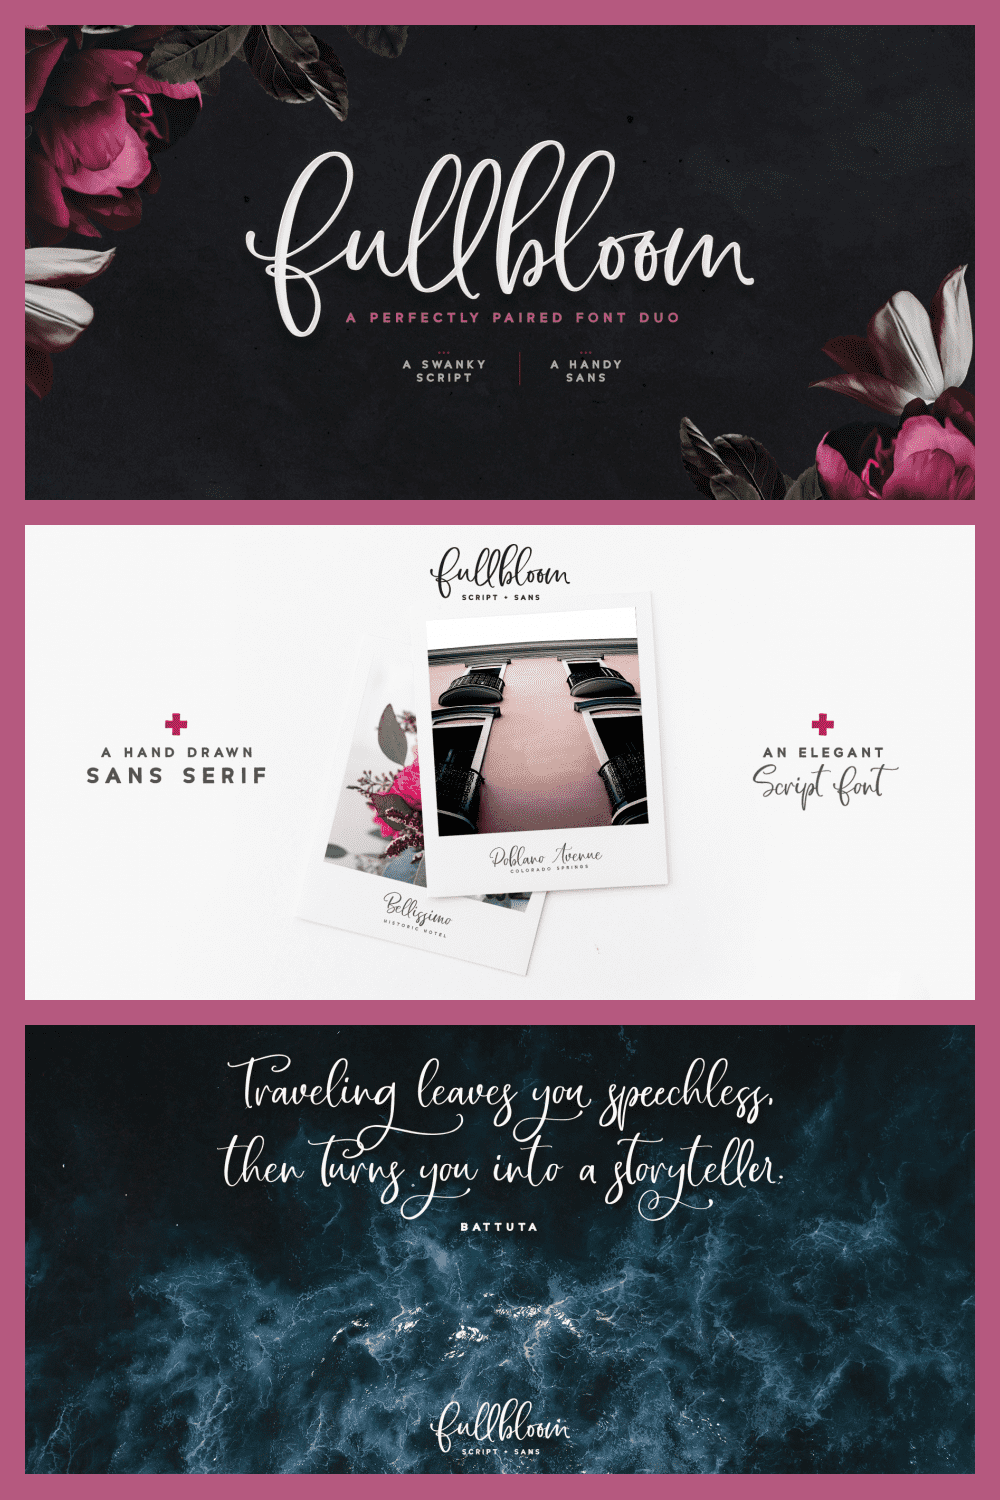 It is a blooming, relaxed and fragrant font.